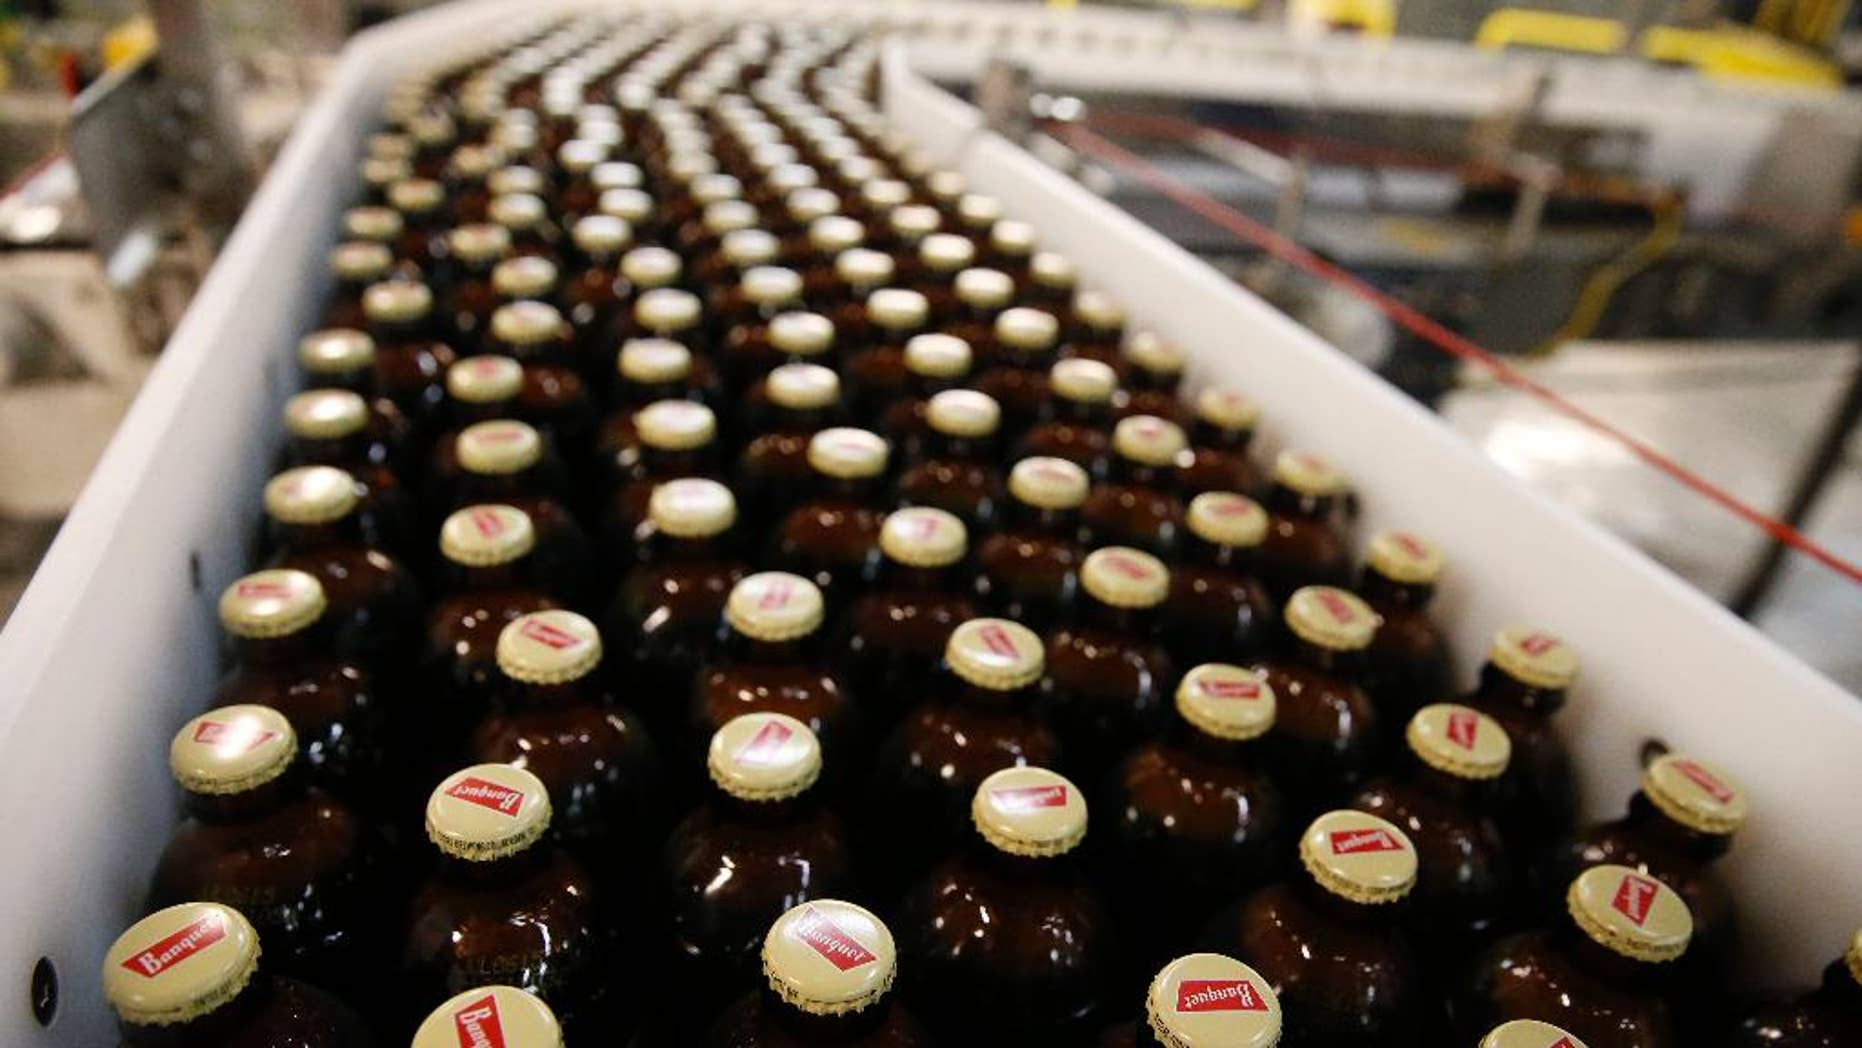 In this March 11, 2015 photo, newly-filled and sealed bottles of Coors Banquet beer move along on a conveyor belt, at the MillerCoors Brewery, in Golden, Colo. The Commerce Department releases factory orders for March on Monday, May 4, 2015. (AP Photo/Brennan Linsley)